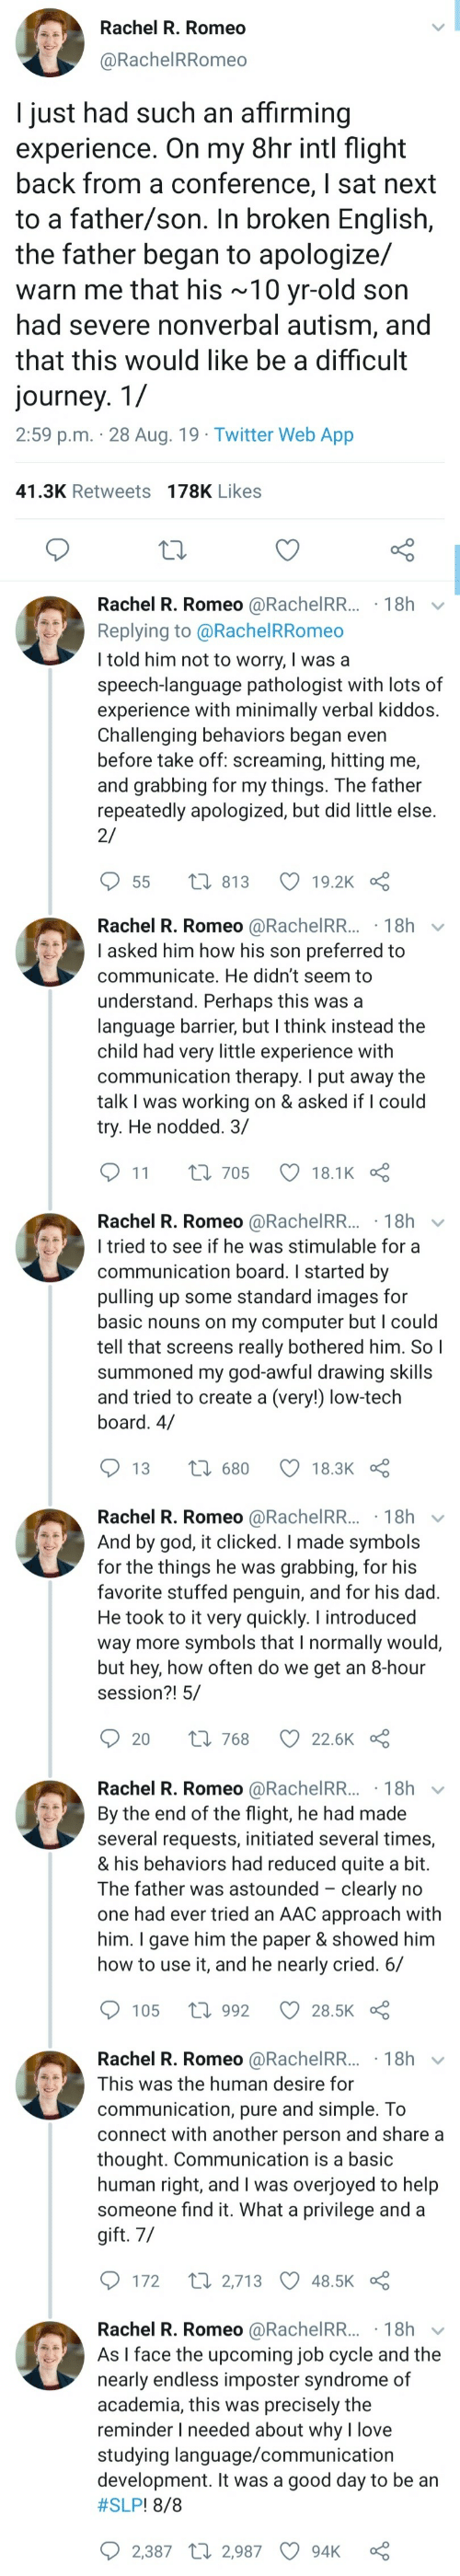 communication: Rachel R. Romeo  @RachelRRomeo  I just had such an affirming  experience. On my 8hr intl flight  back from a conference, I sat next  to a father/son. In broken English,  the father began to apologize/  warn me that his ~10 yr-old son  had severe nonverbal autism, and  that this would like be a difficult  journey. 1/  2:59 p.m. 28 Aug. 19 Twitter Web App  41.3K Retweets 178K Likes  Rachel R. Romeo @RachelRR... 18h  Replying to @Rachel RRomeo  I told him not to worry, I was a  speech-language pathologist with lots of  experience with minimally verbal kiddos.  Challenging behaviors began even  before take off: screaming, hitting me,  and grabbing for my things. The father  repeatedly apologized, but did little else  2/  t 813  19.2K  55   Rachel R. Romeo @RachelRR...18h  I asked him how his son preferred to  communicate. He didn't seem to  understand. Perhaps this was a  language barrier, but I think instead the  child had very little experience with  communication therapy. I put away the  talk I was working on & asked if I could  try. He nodded. 3/  11  L 705  18.1K  Rachel R. Romeo @RachelRR... 18h  I tried to see if he was stimulable for a  communication board. I started by  pulling up some standard images for  basic nouns on my computer but I could  tell that screens really bothered him. So I  summoned my god-awful drawing skills  and tried to create a (very!) low-tech  board. 4/  1680  13  18.3K  Rachel R. Romeo @RachelRR... 18h  And by god, it clicked. I made symbols  for the things he was  favorite stuffed penguin, and for his dad.  He took to it very quickly. I introduced  way more symbols that I normally would,  but hey, how often do we get an 8-hour  session?! 5/  grabbing, for his  Li 768  20  22.6K   Rachel R. Romeo @RachelRR... 18h  By the end of the flight, he had made  several requests, initiated several times,  & his behaviors had reduced quite a bit.  The father was astounded clearly no  one had ever tried an AAC approach with  him. I gave him the paper & showed him  how to use it, and he nearly cried. 6/  1992  105  28.5K  Rachel R. Romeo @RachelRR... 18h  This was the human desire for  communication, pure and simple. To  connect with another person and share a  thought. Communication is a basic  human right, and I was overjoyed to help  someone find it. What a privilege and a  gift. 7/  t 2,713 48.5K  172  Rachel R. Romeo @RachelRR... 18h  As I face the upcoming job cycle and the  nearly endless imposter syndrome of  academia, this was precisely the  reminder I needed about why l love  studying language/communication  development. It was a good day to be an  #SLP ! 8/8  2,387 2,987  94K